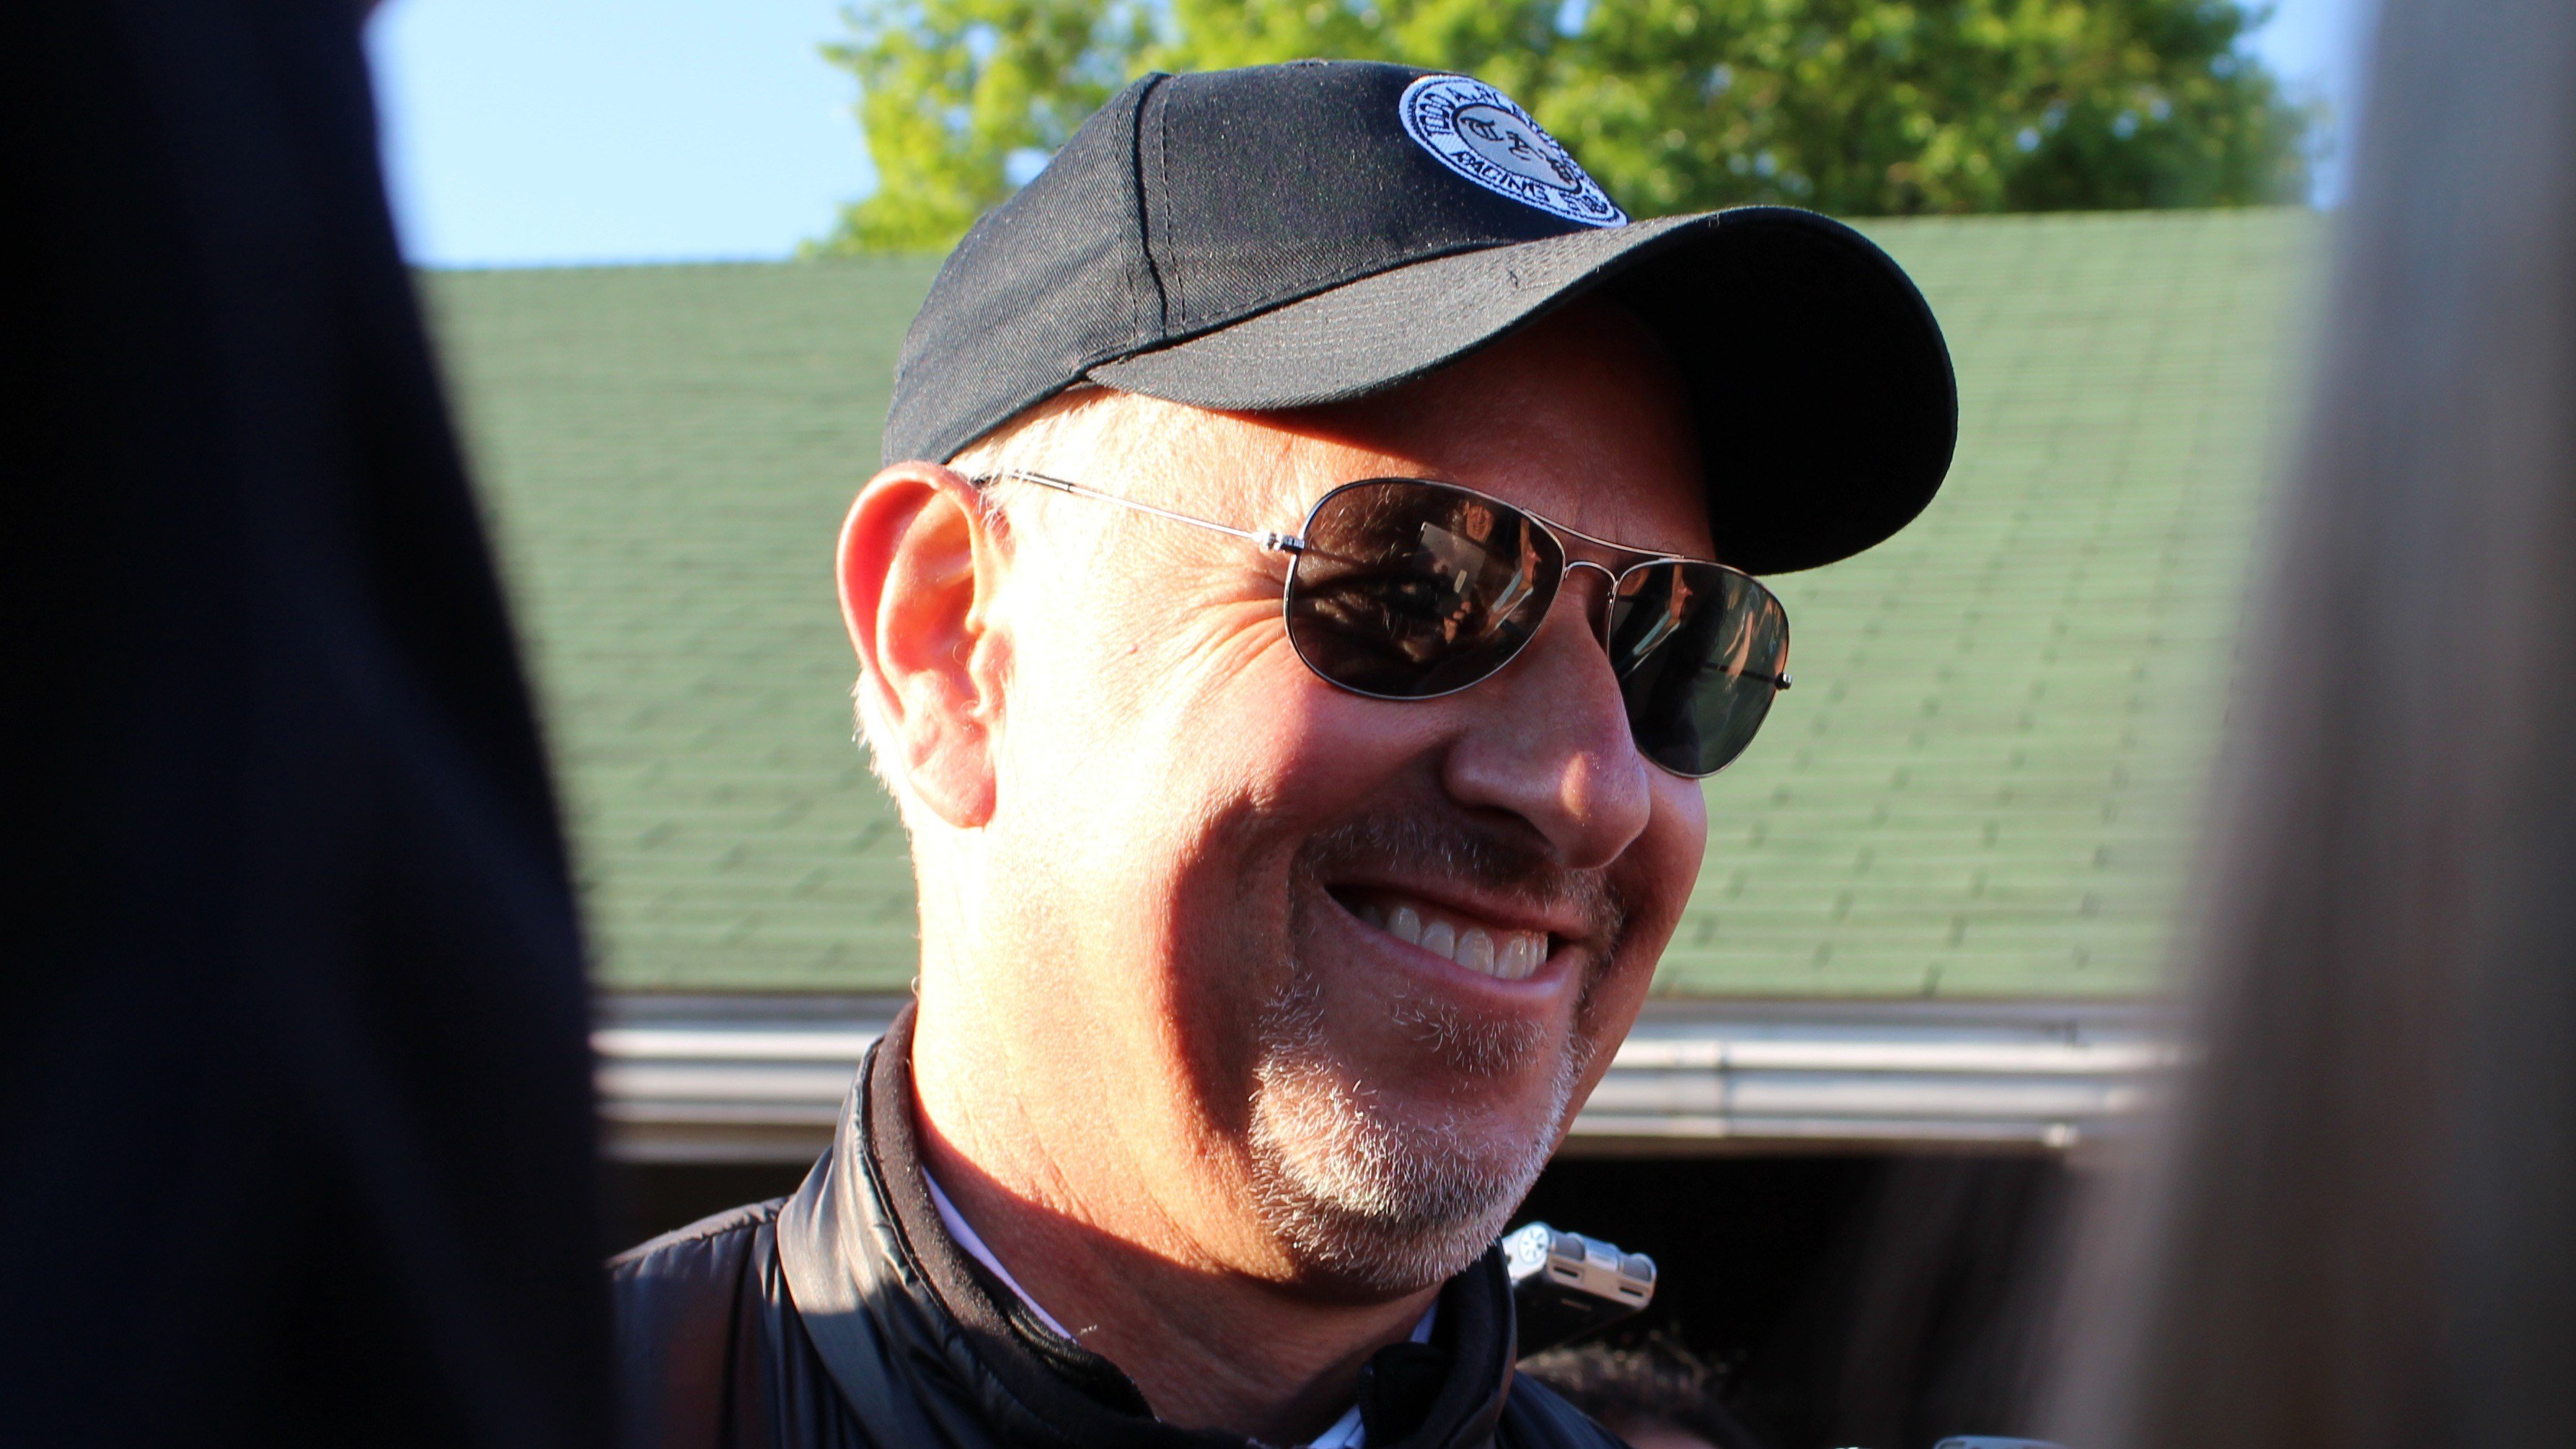 Trainer Todd Pletcher flashes a smile the morning after winning his second Kentucky Derby. (WDRB photo by Eric Crawford)